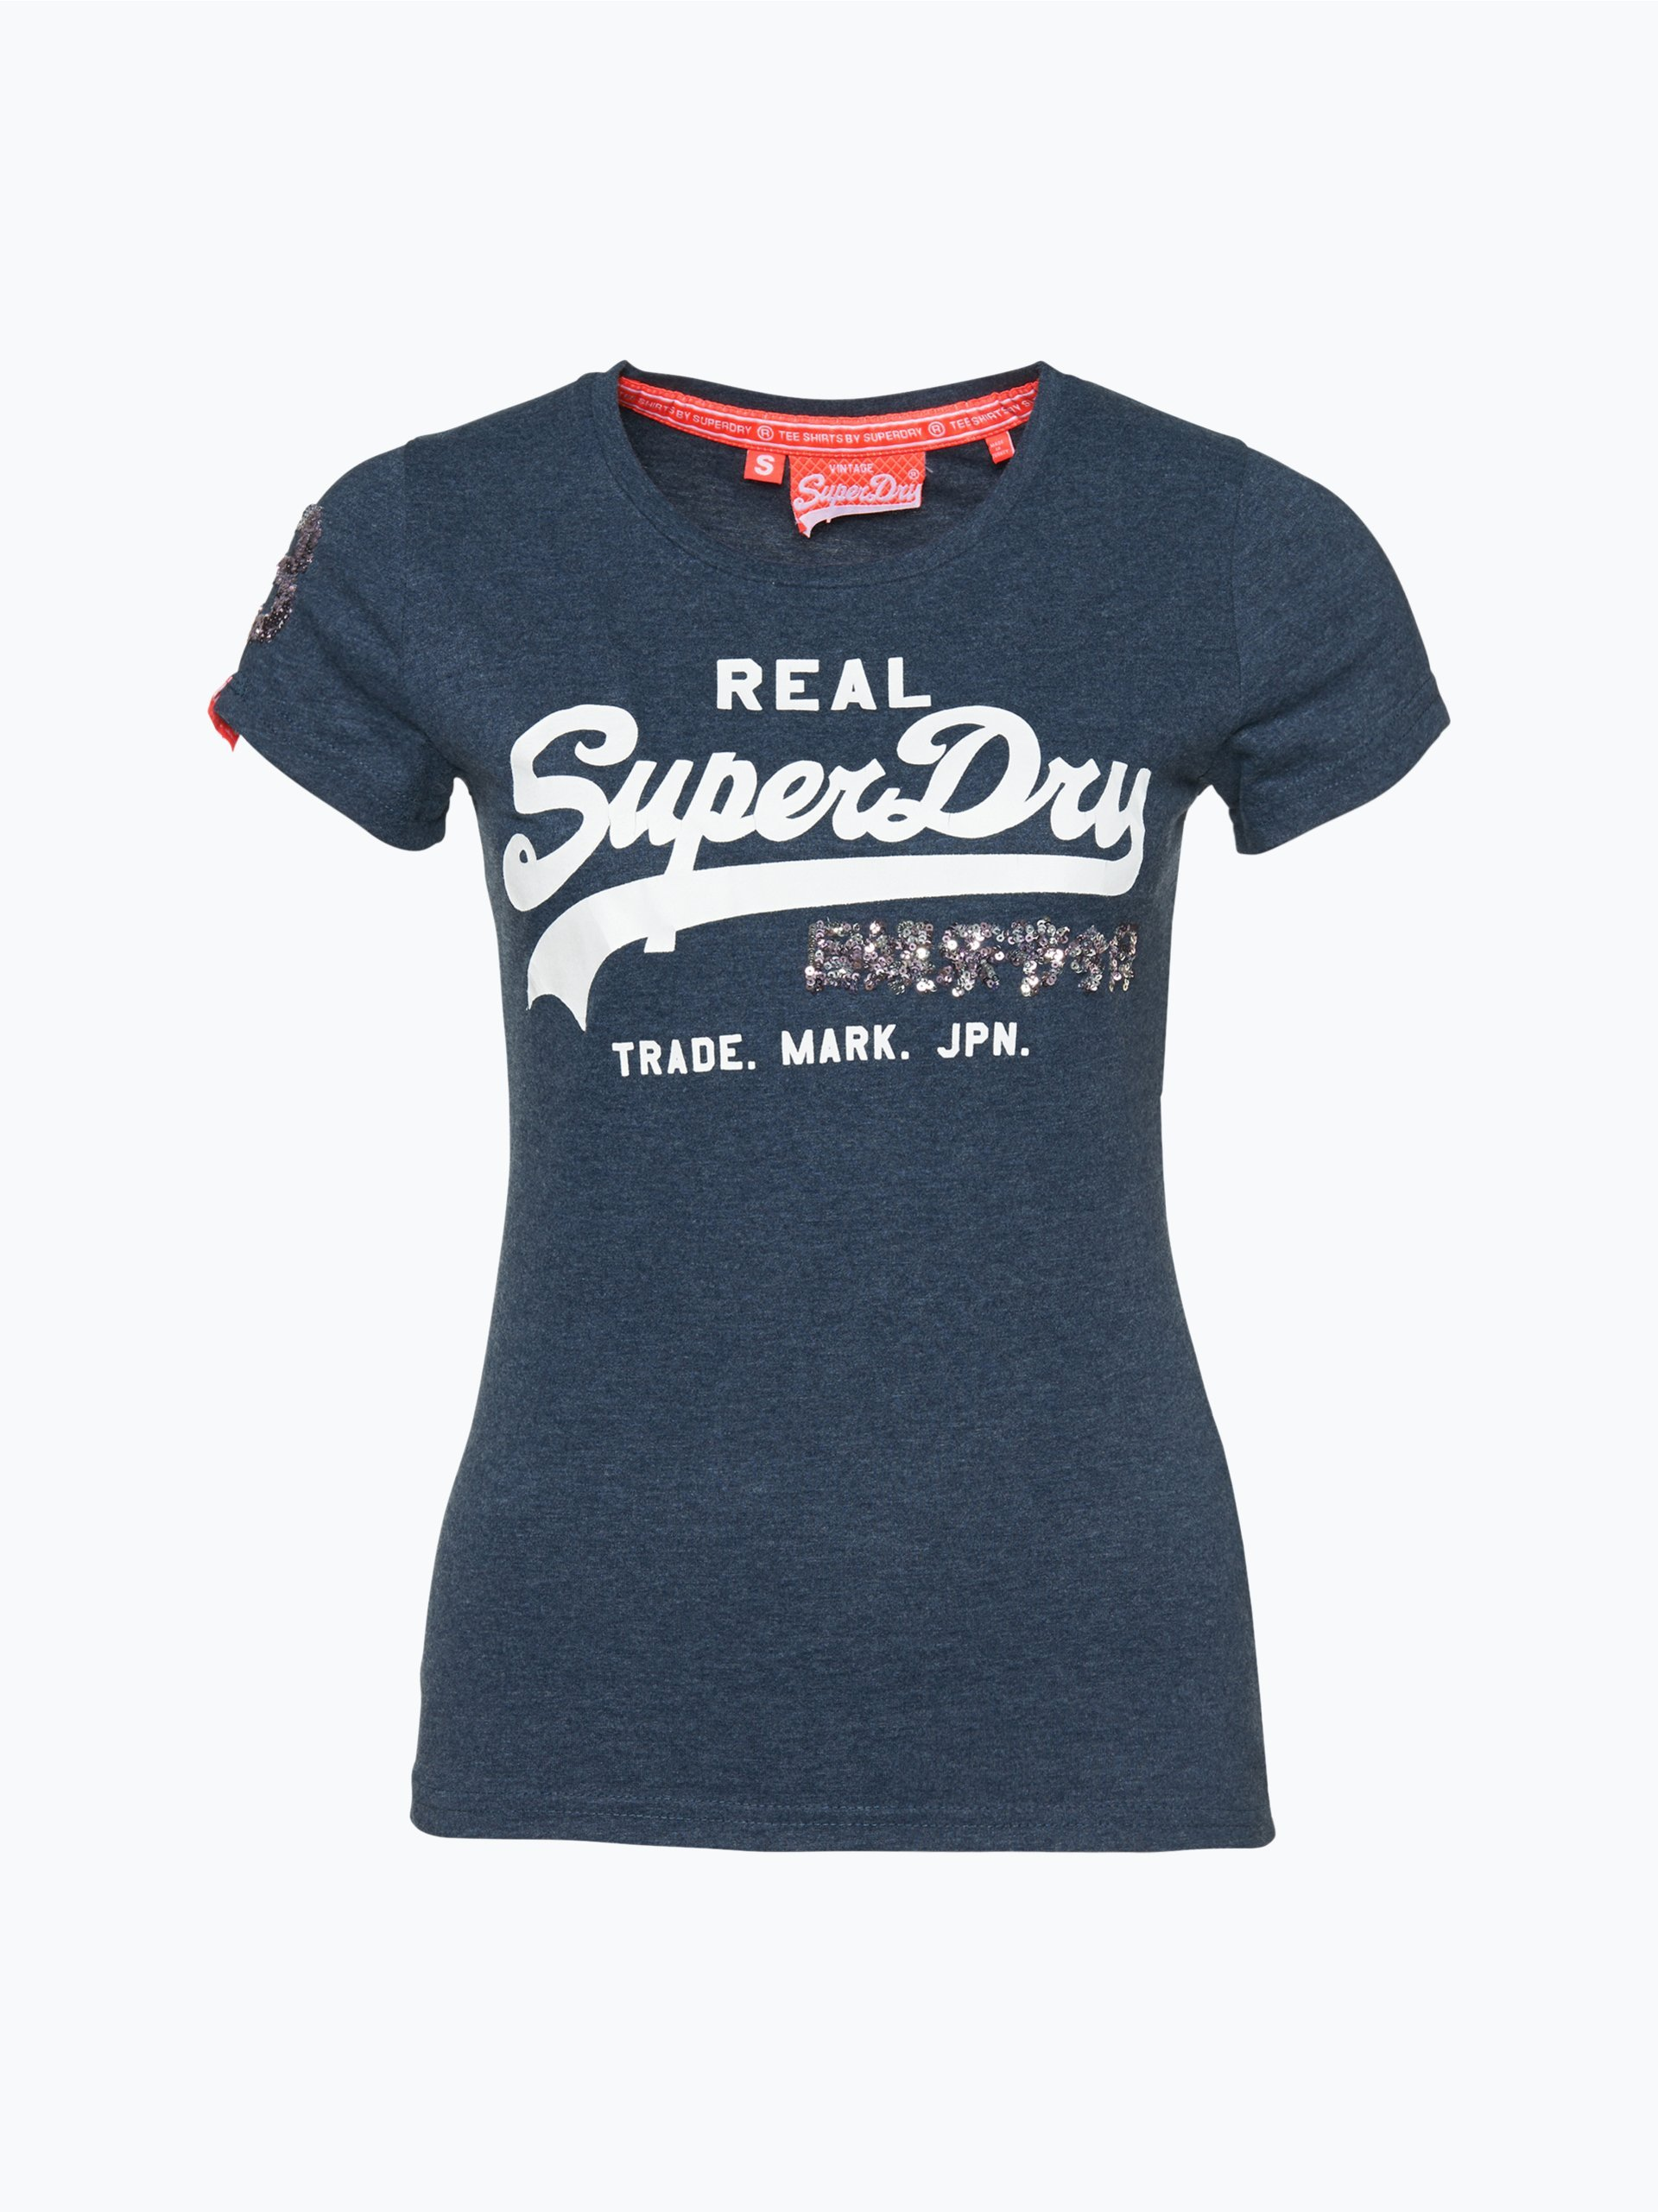 superdry damen t shirt blau uni online kaufen vangraaf com. Black Bedroom Furniture Sets. Home Design Ideas